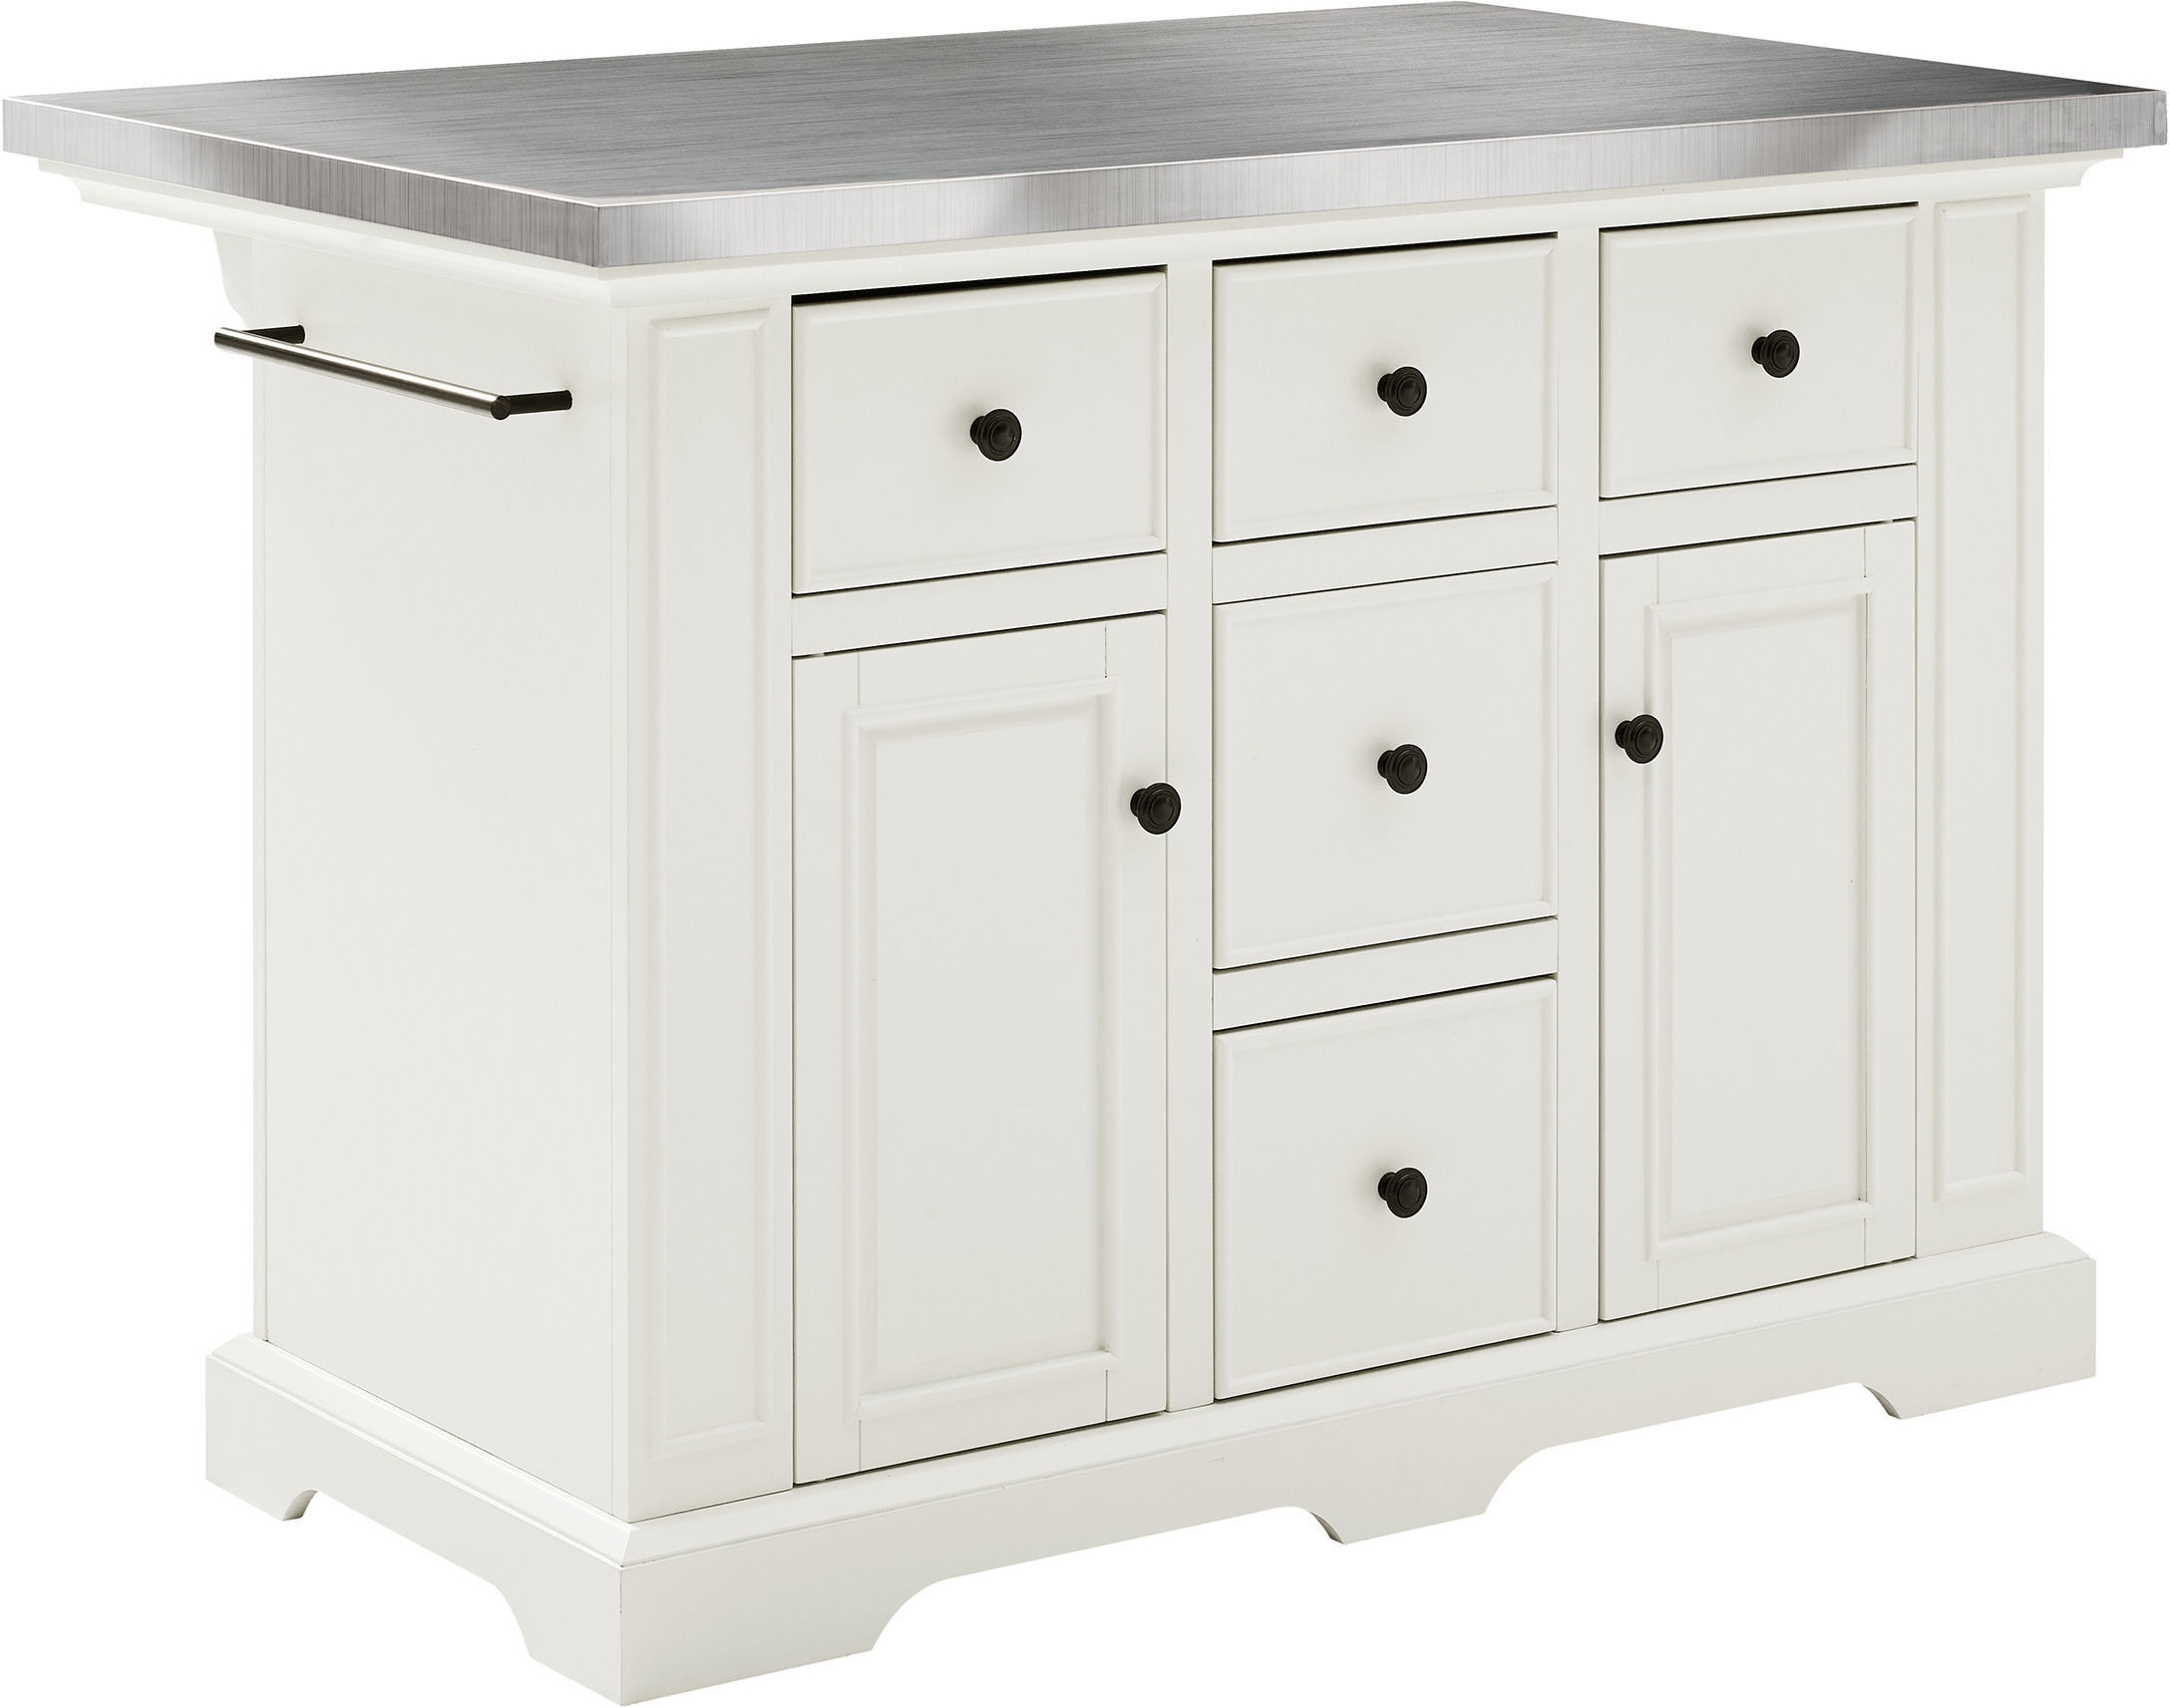 Dining Room Furniture - Wells Kitchen Island